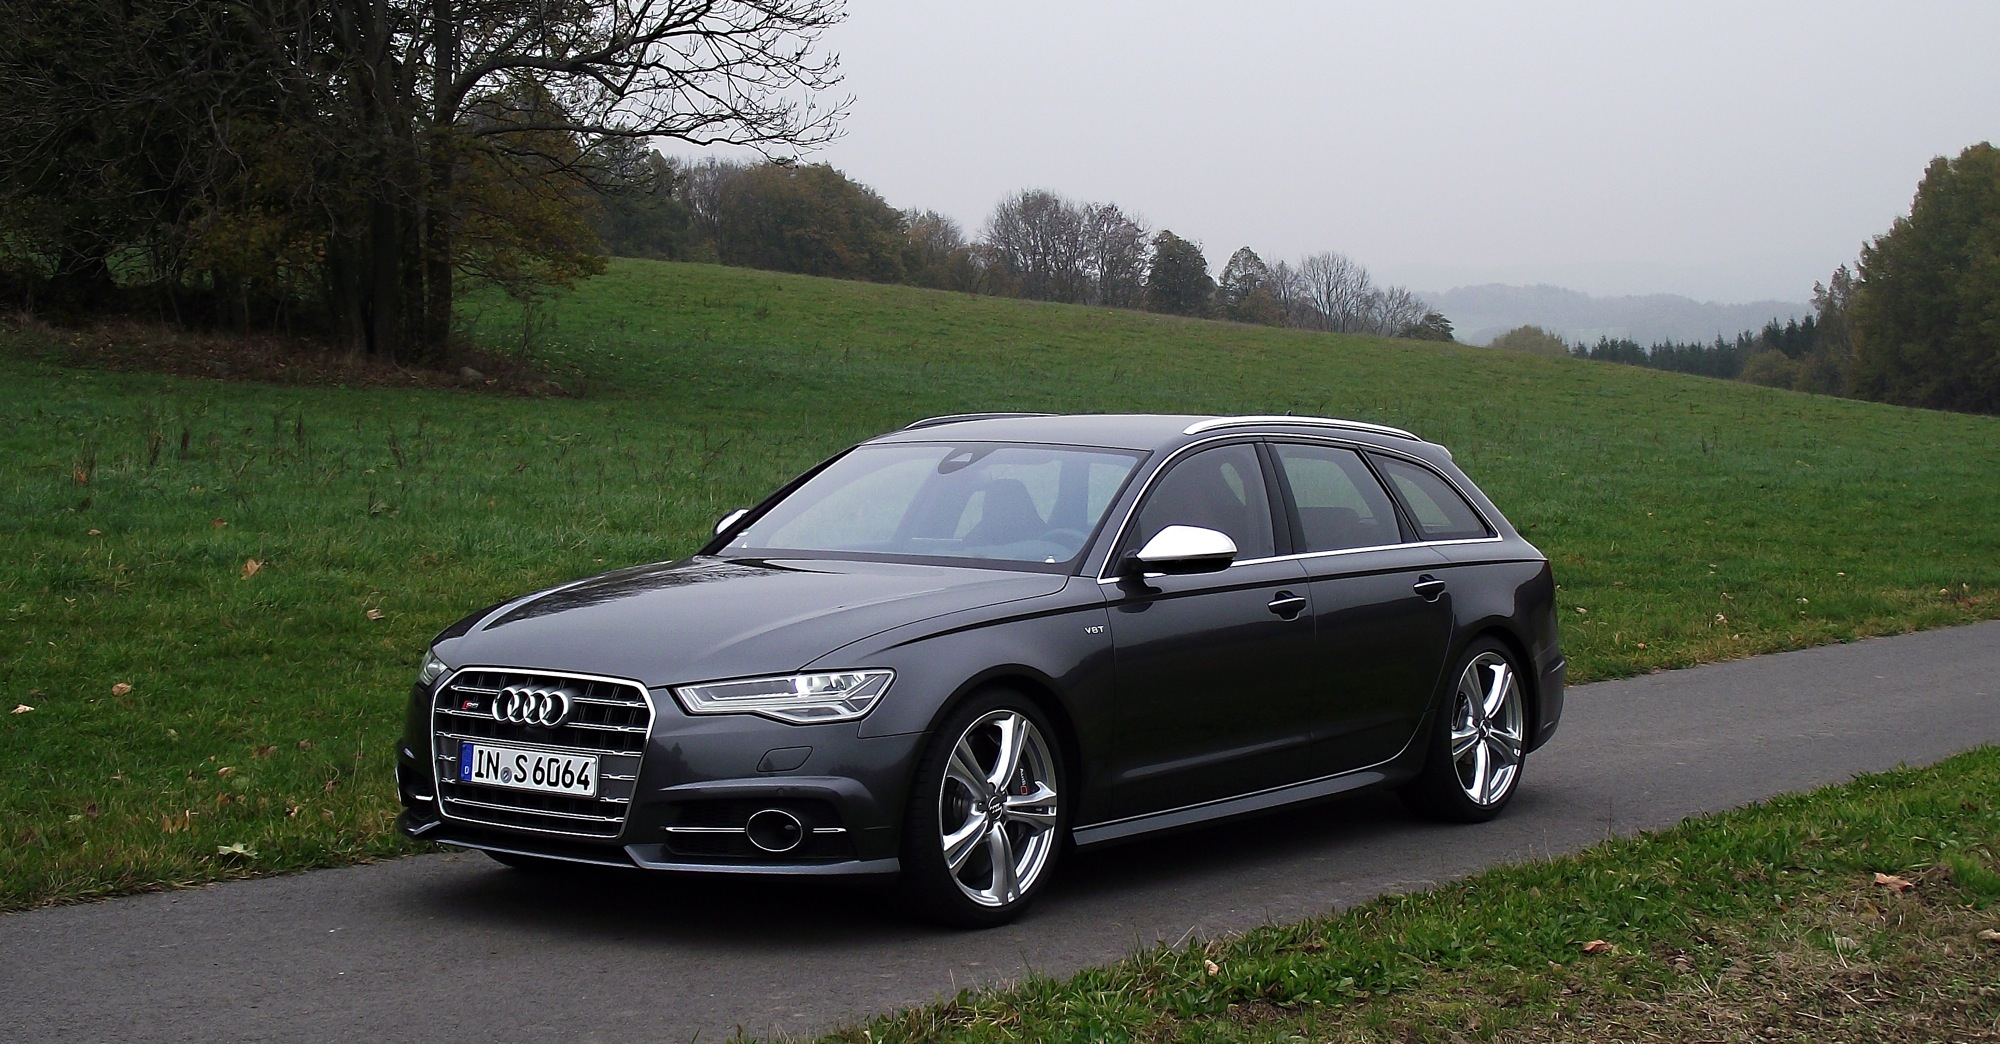 2014 audi s6 avant iii pictures information and specs. Black Bedroom Furniture Sets. Home Design Ideas